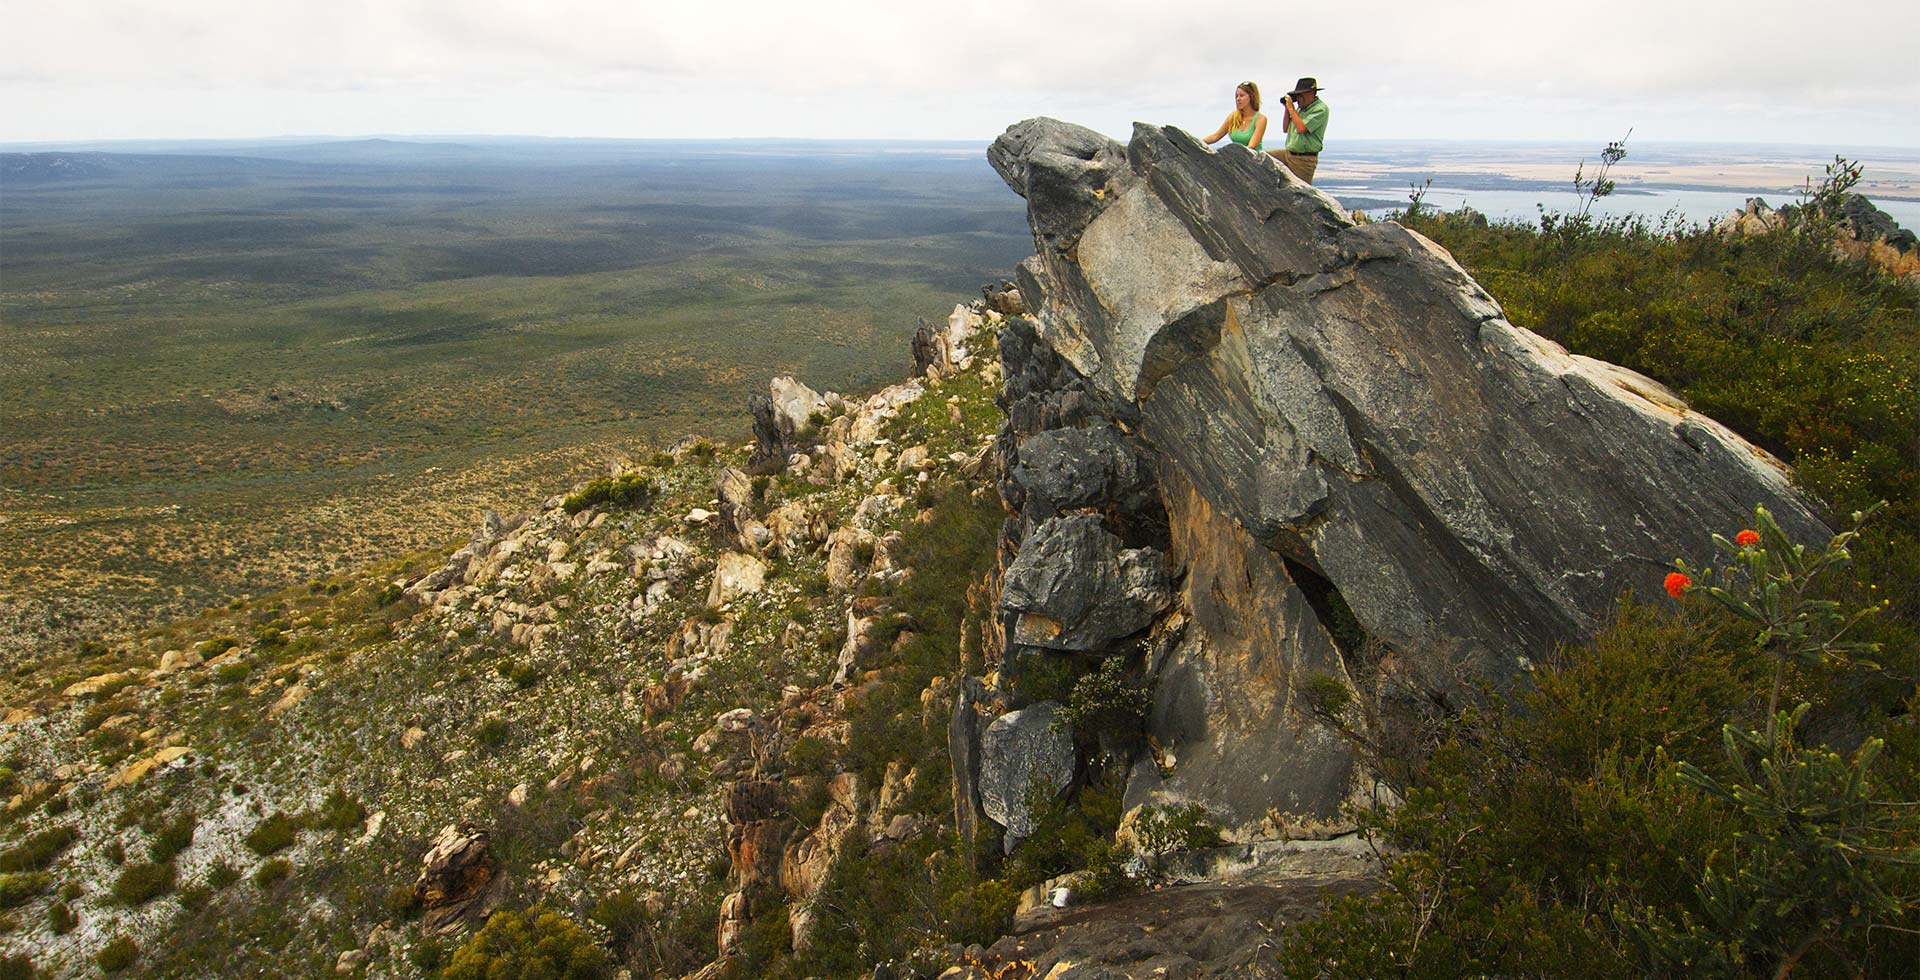 Hike through the rocky East Mount Barren of Esperance